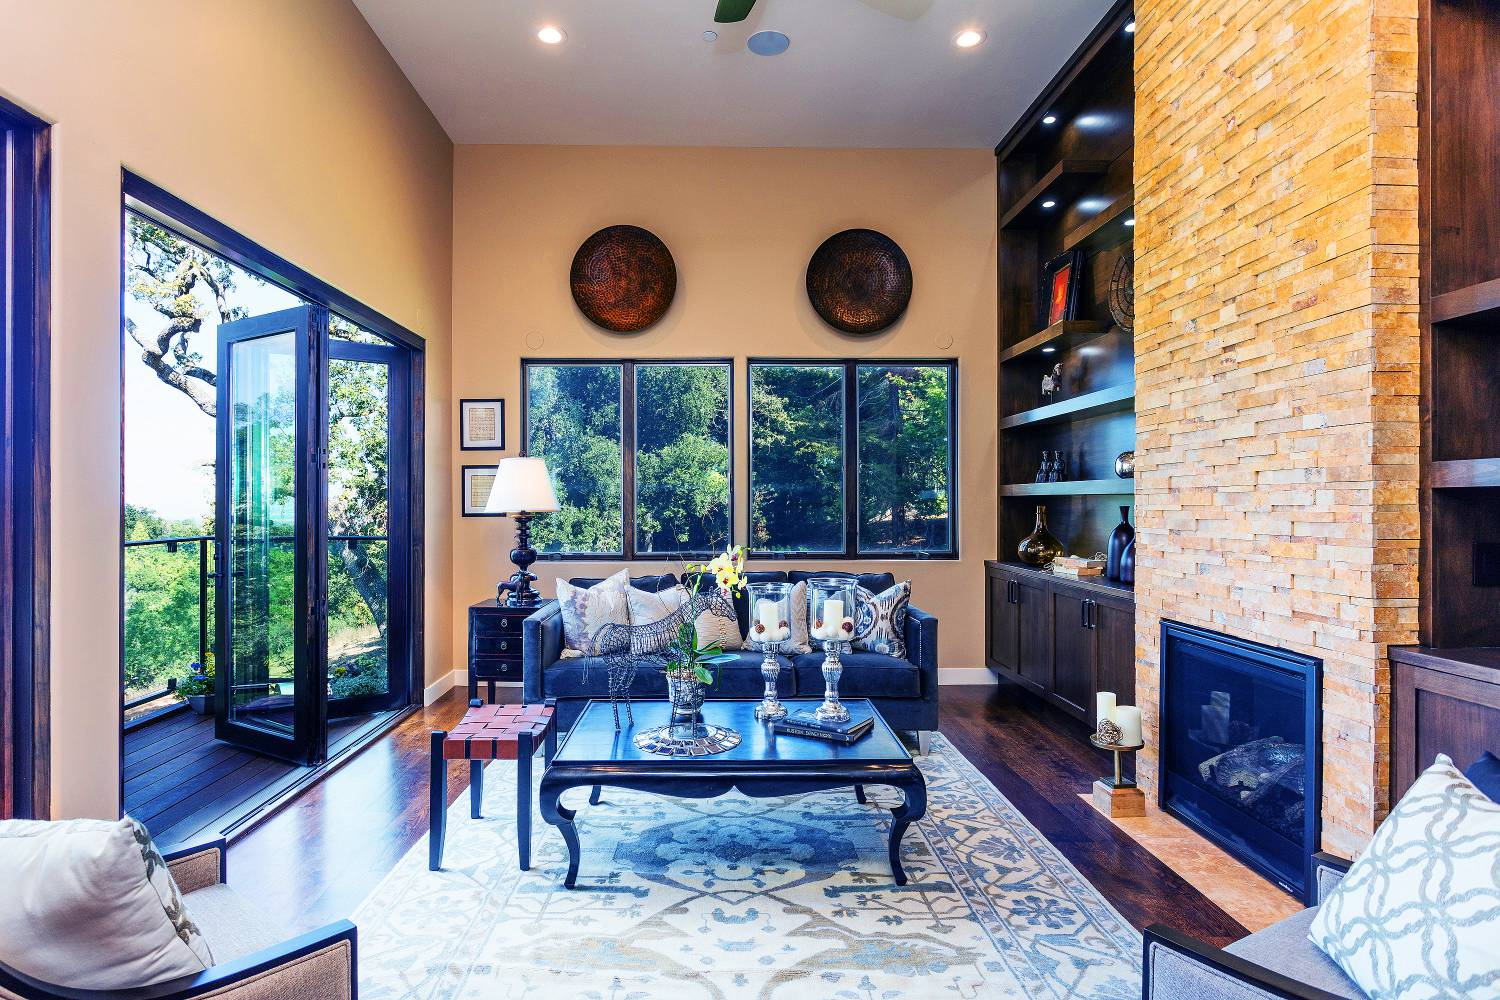 Living area, open window, interior design work, Los Altos Hills